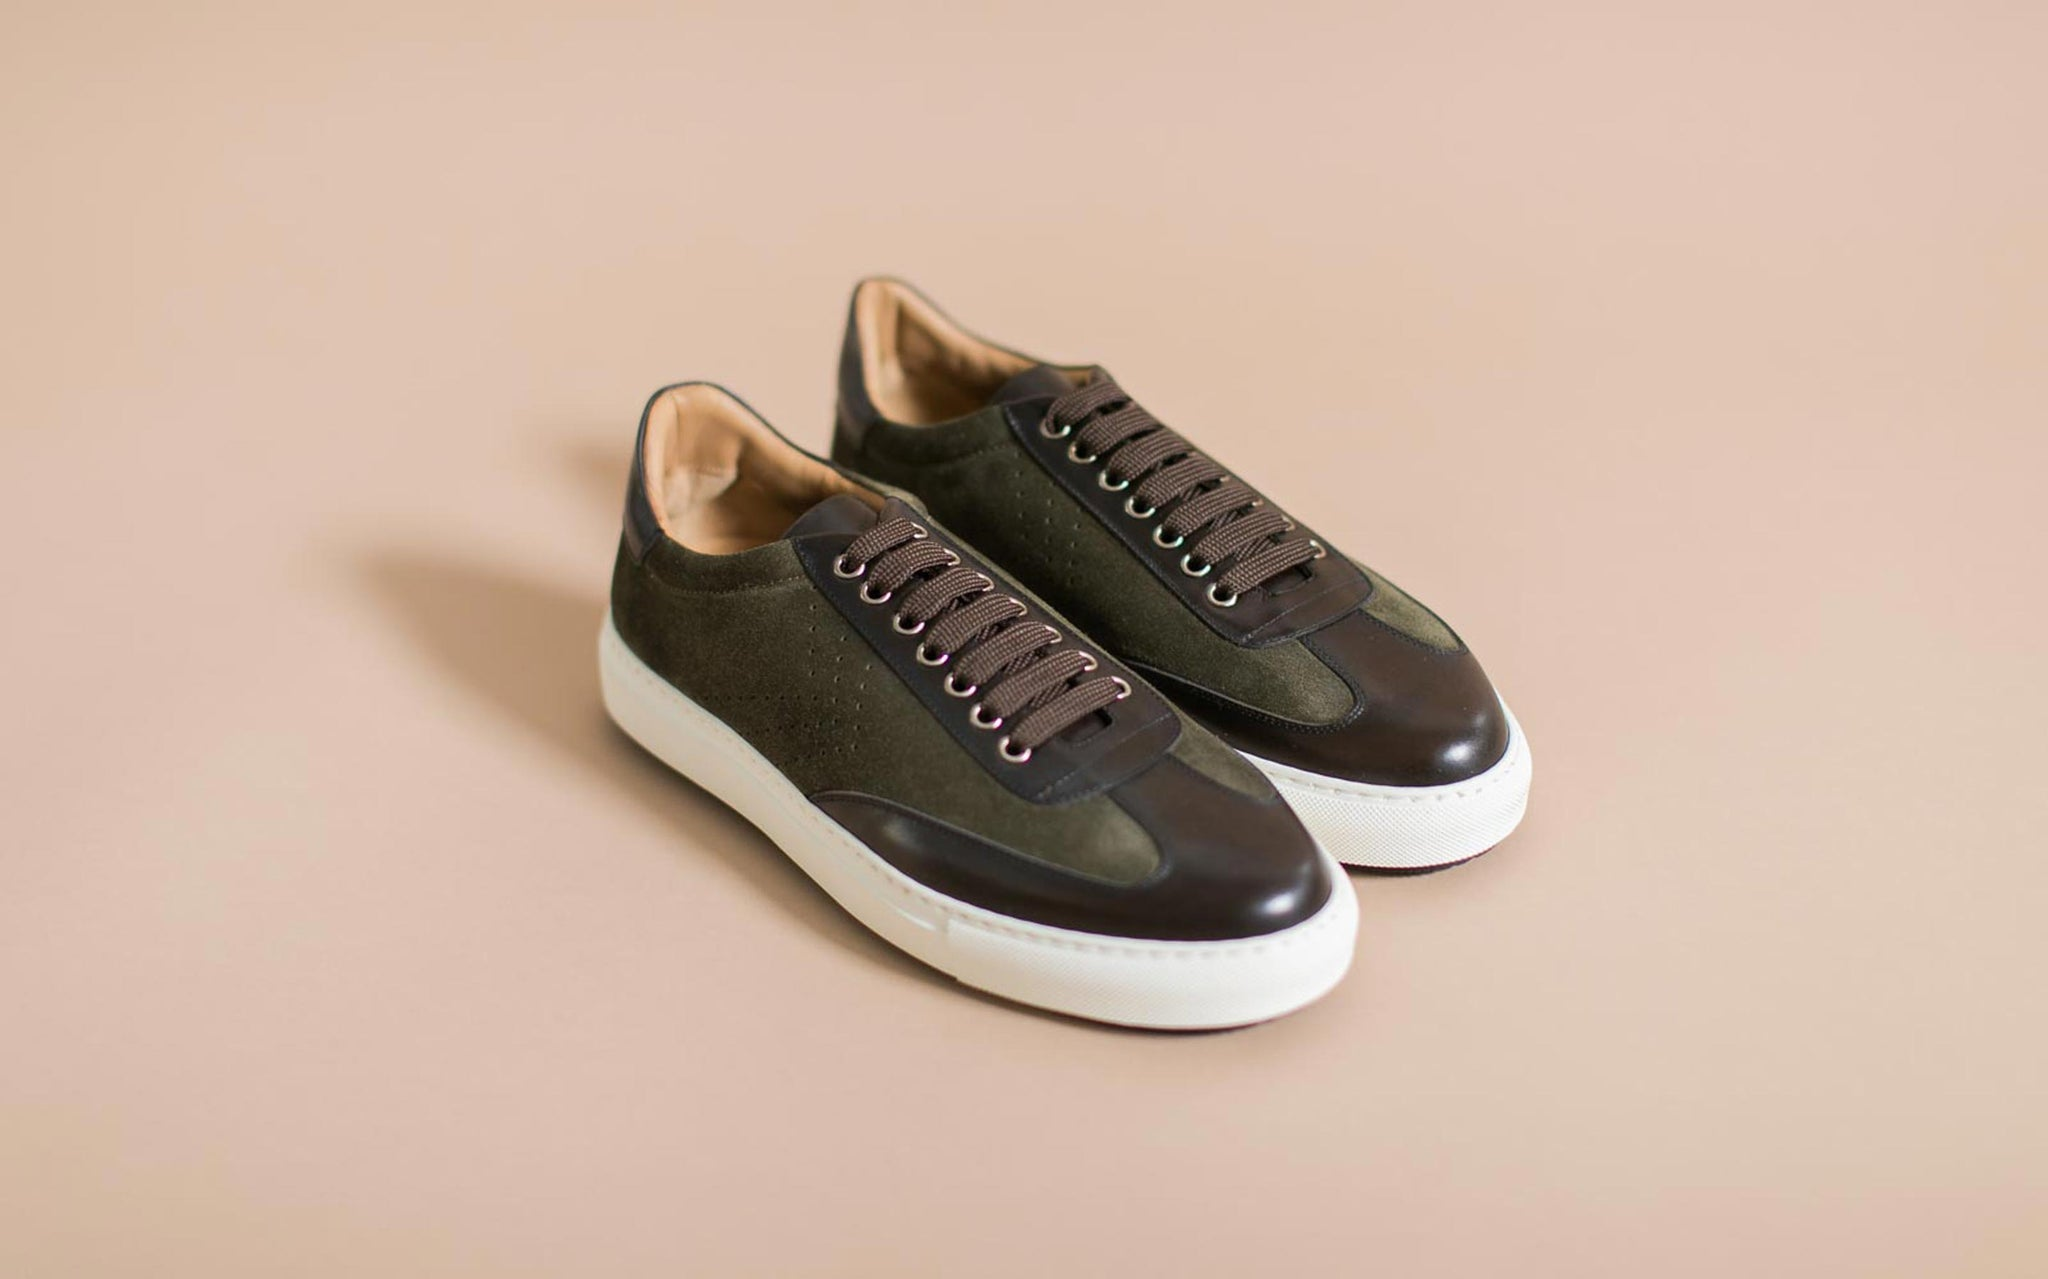 <i>Classic shoes with a Modern Twist</i>